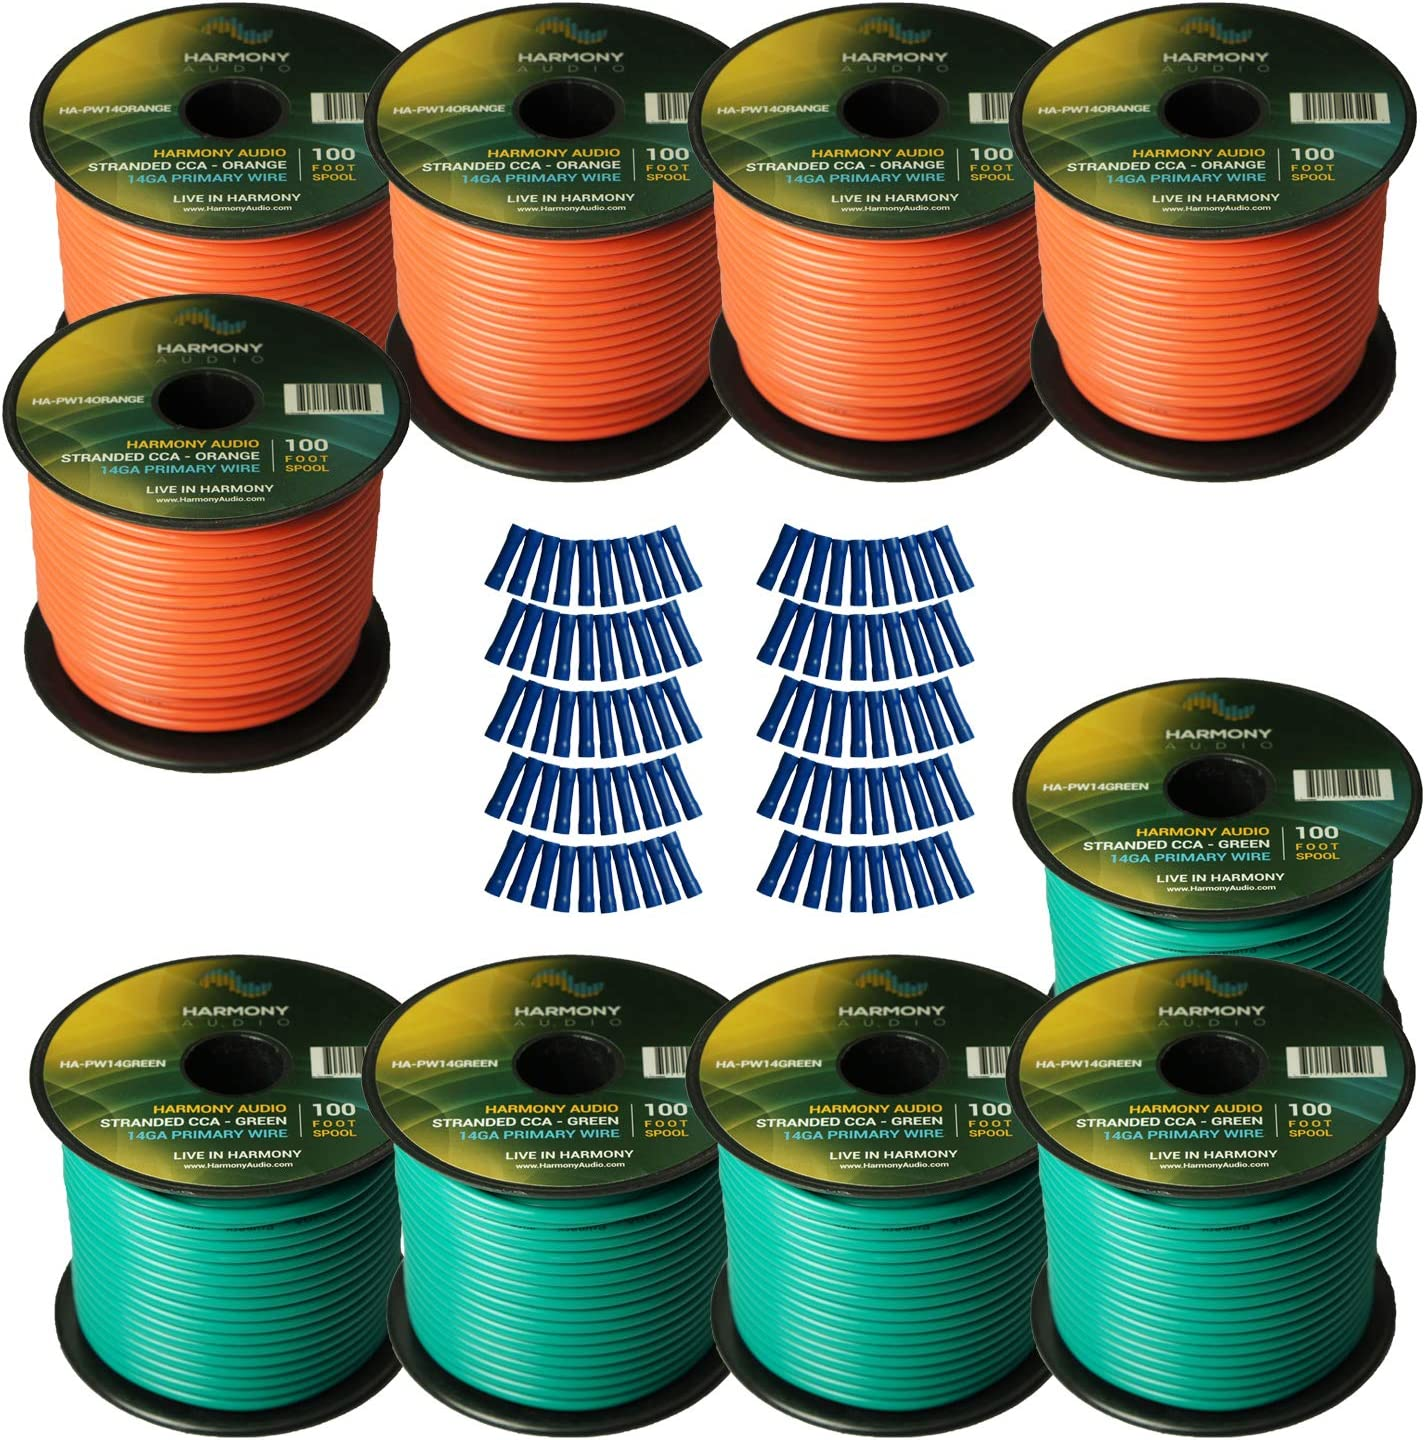 B07L6NY5HC Harmony Audio Primary Single Conductor 14 Gauge Power or Ground Wire - 10 Rolls - 1000 Feet - Green & Orange for Car Audio/Trailer/Model Train/Remote 81mdILEPMvL